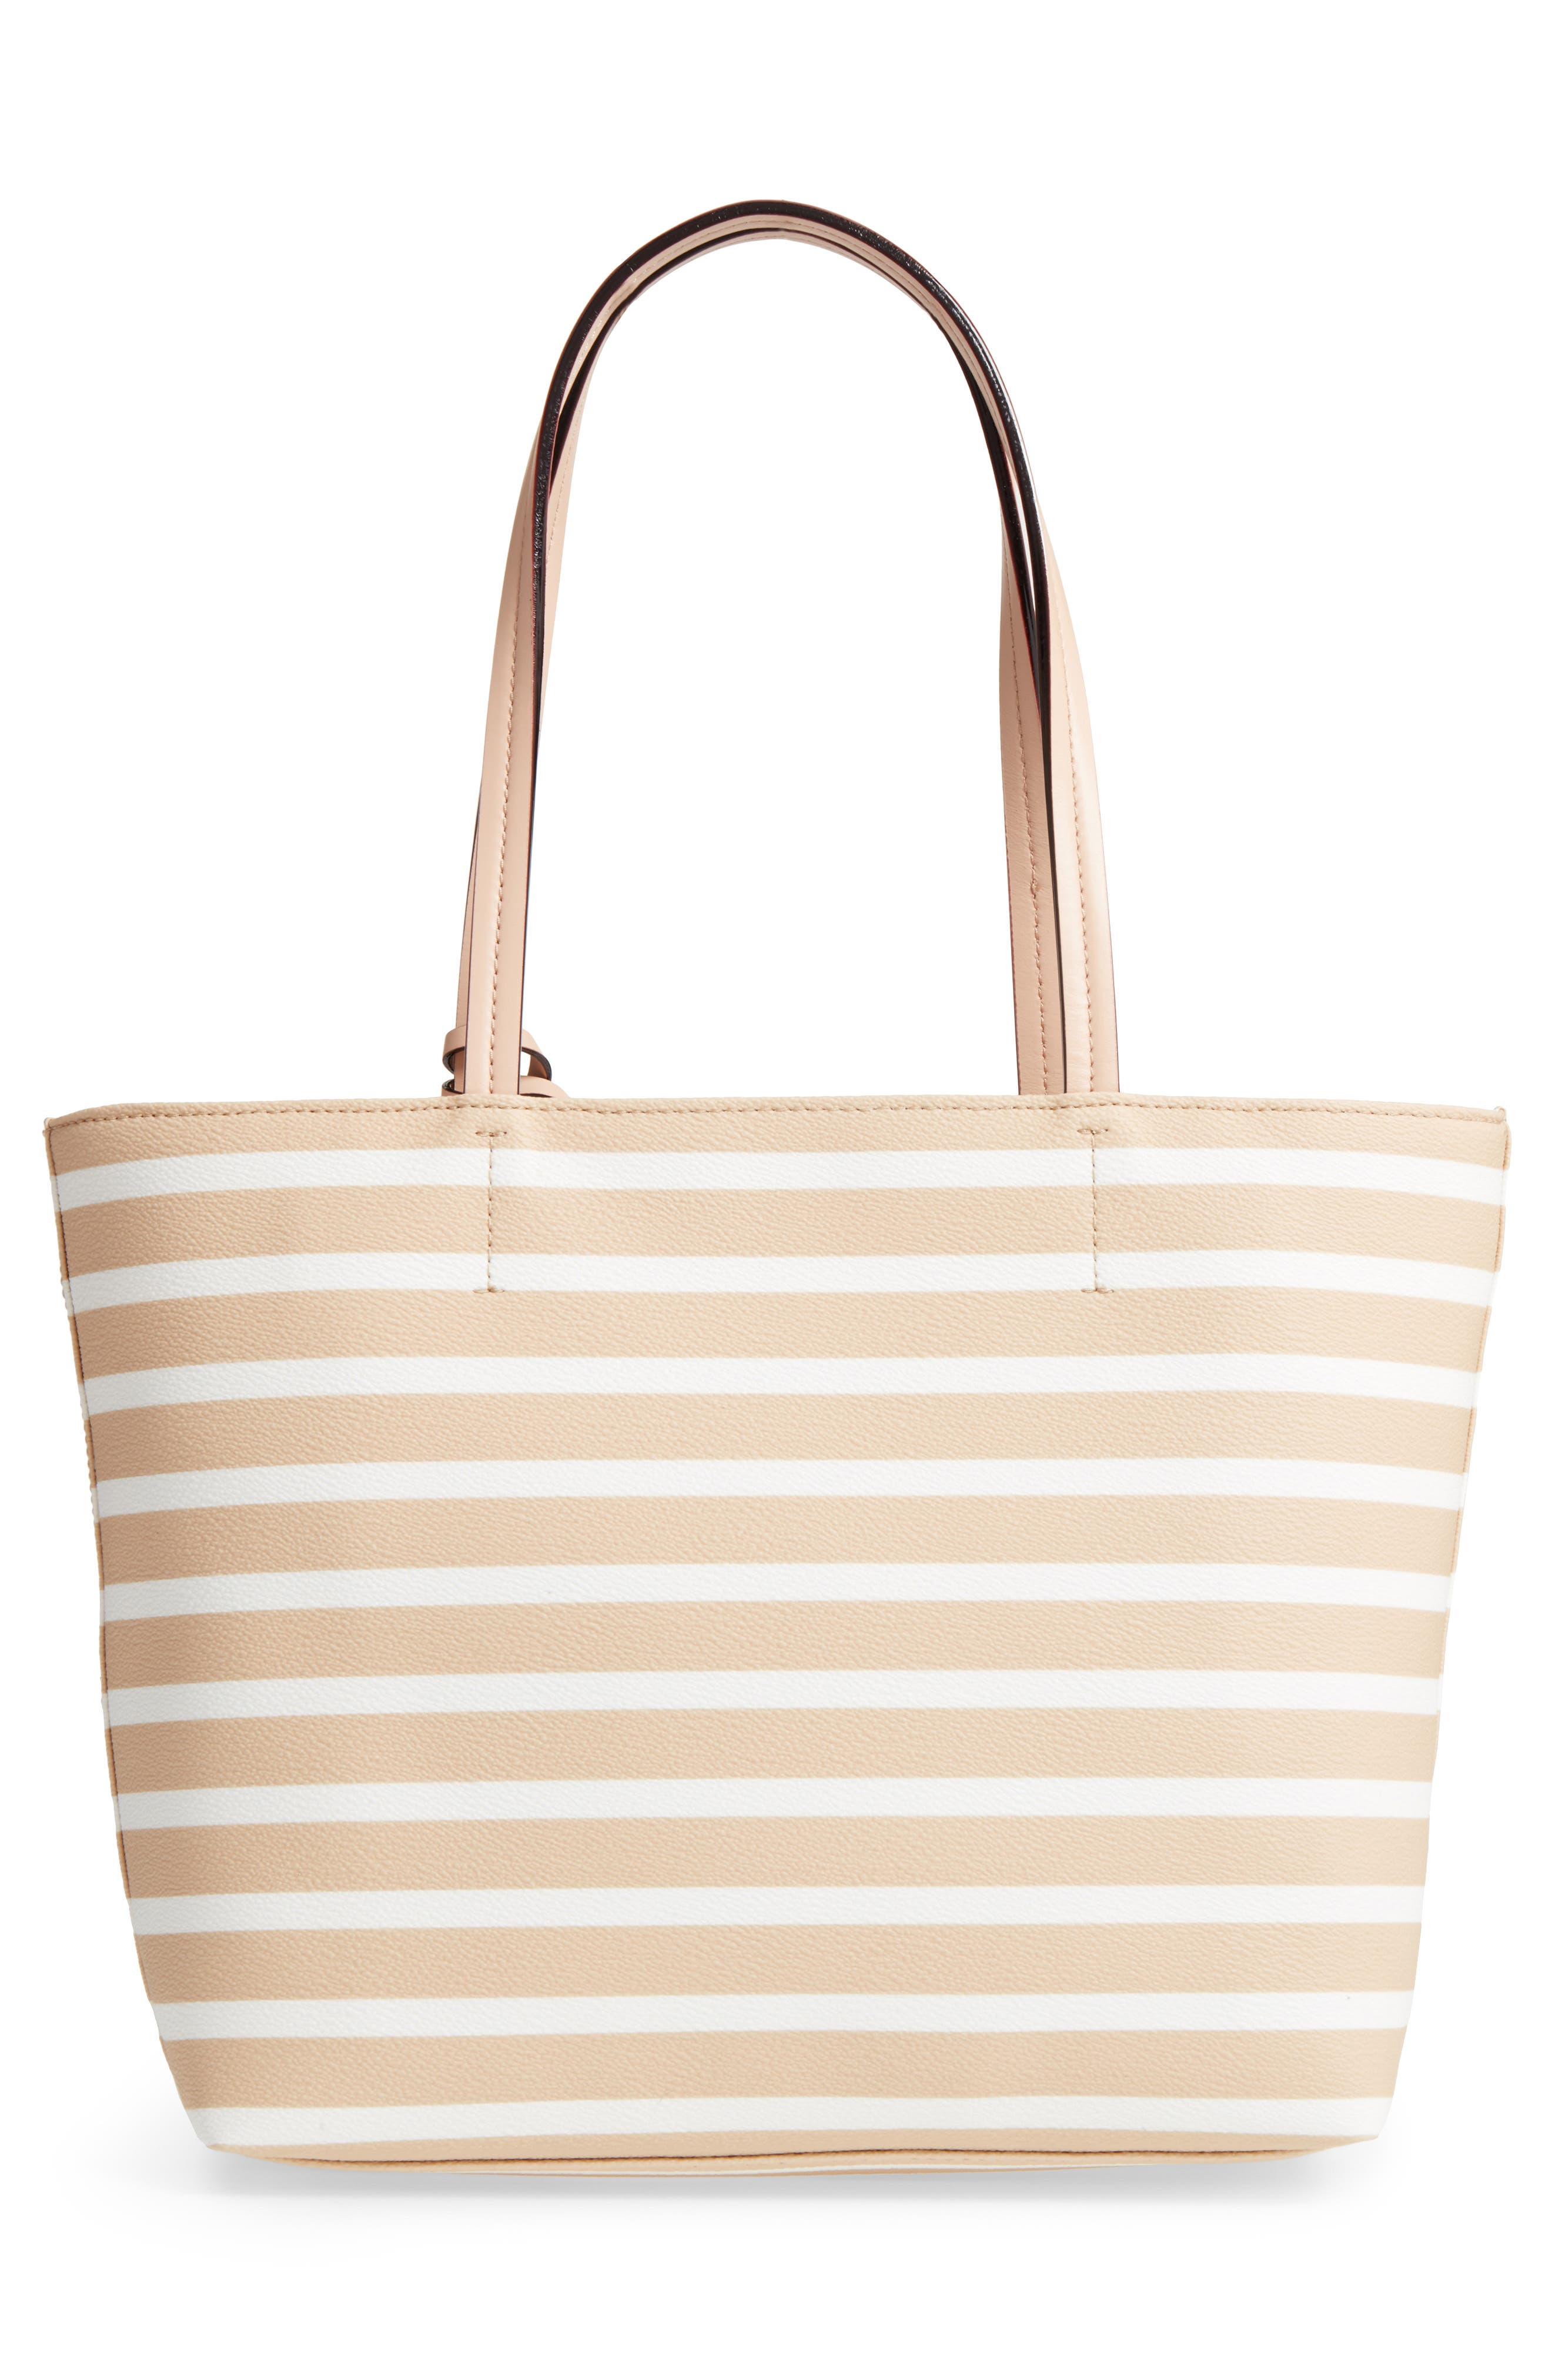 hyde lane - small riley faux leather tote,                             Alternate thumbnail 4, color,                             Classic Camel/ Cream